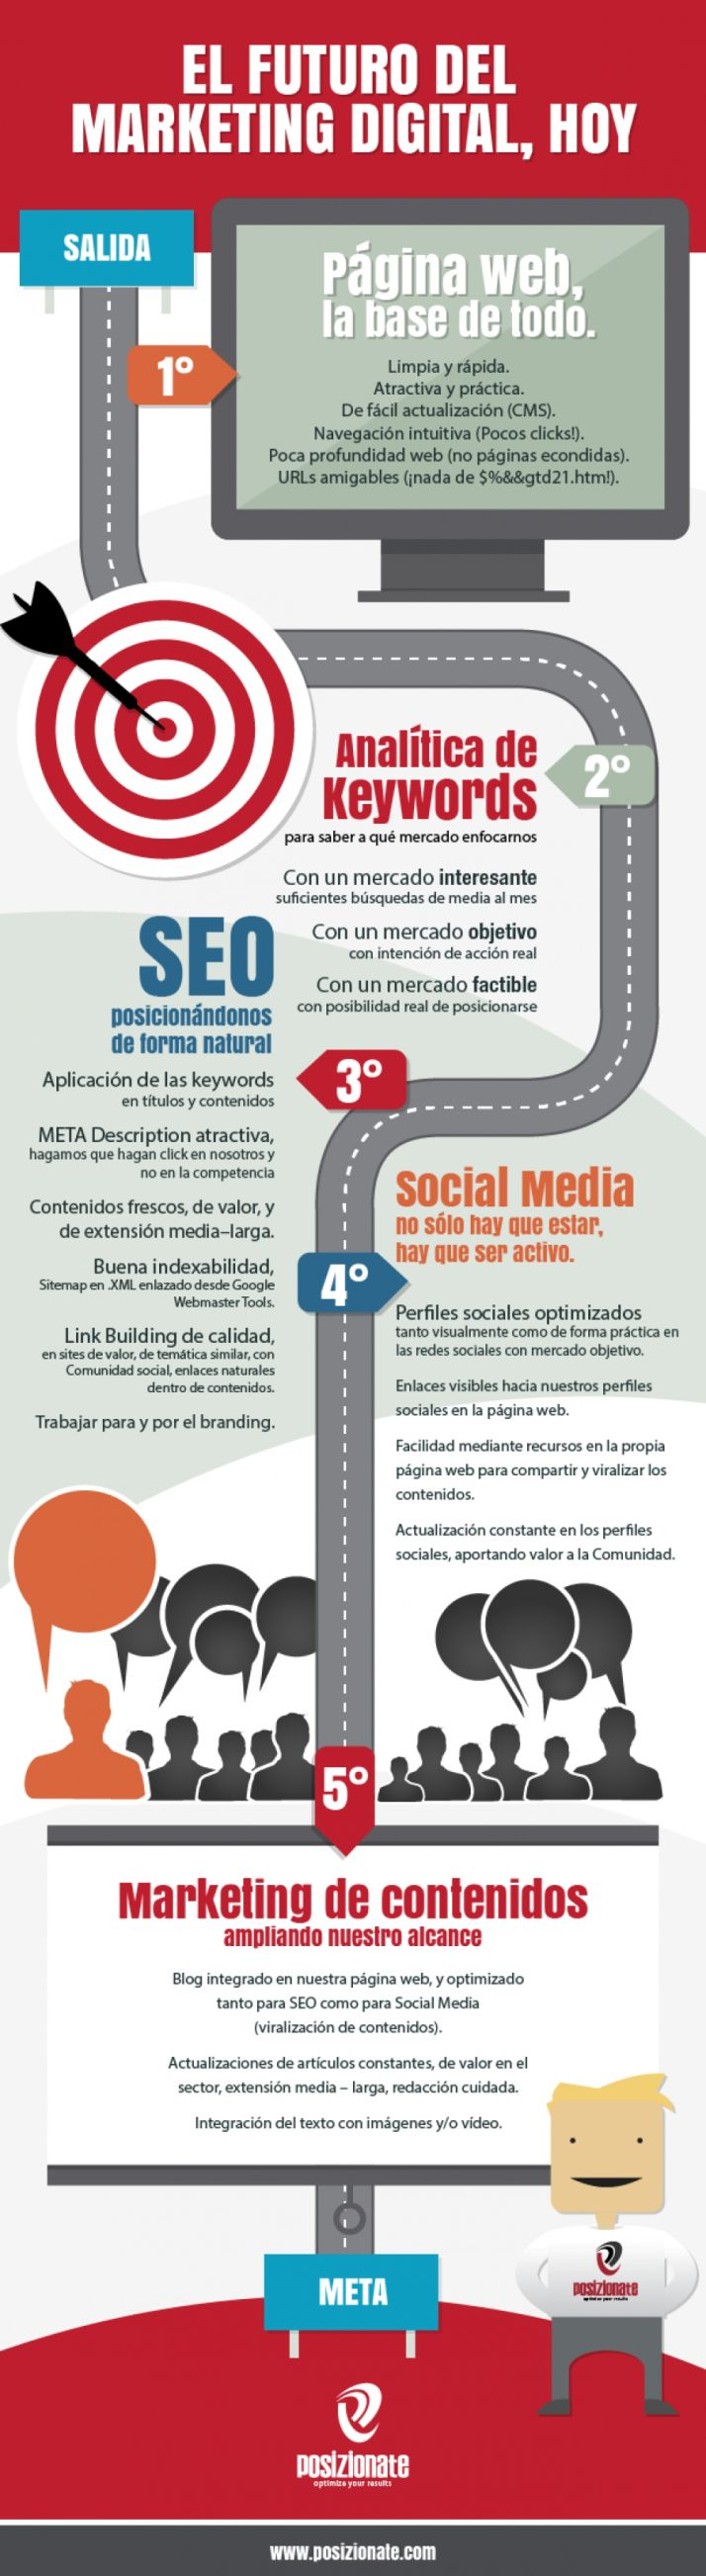 El futuro del marketing digital hoy #infografia #infographic #marketing